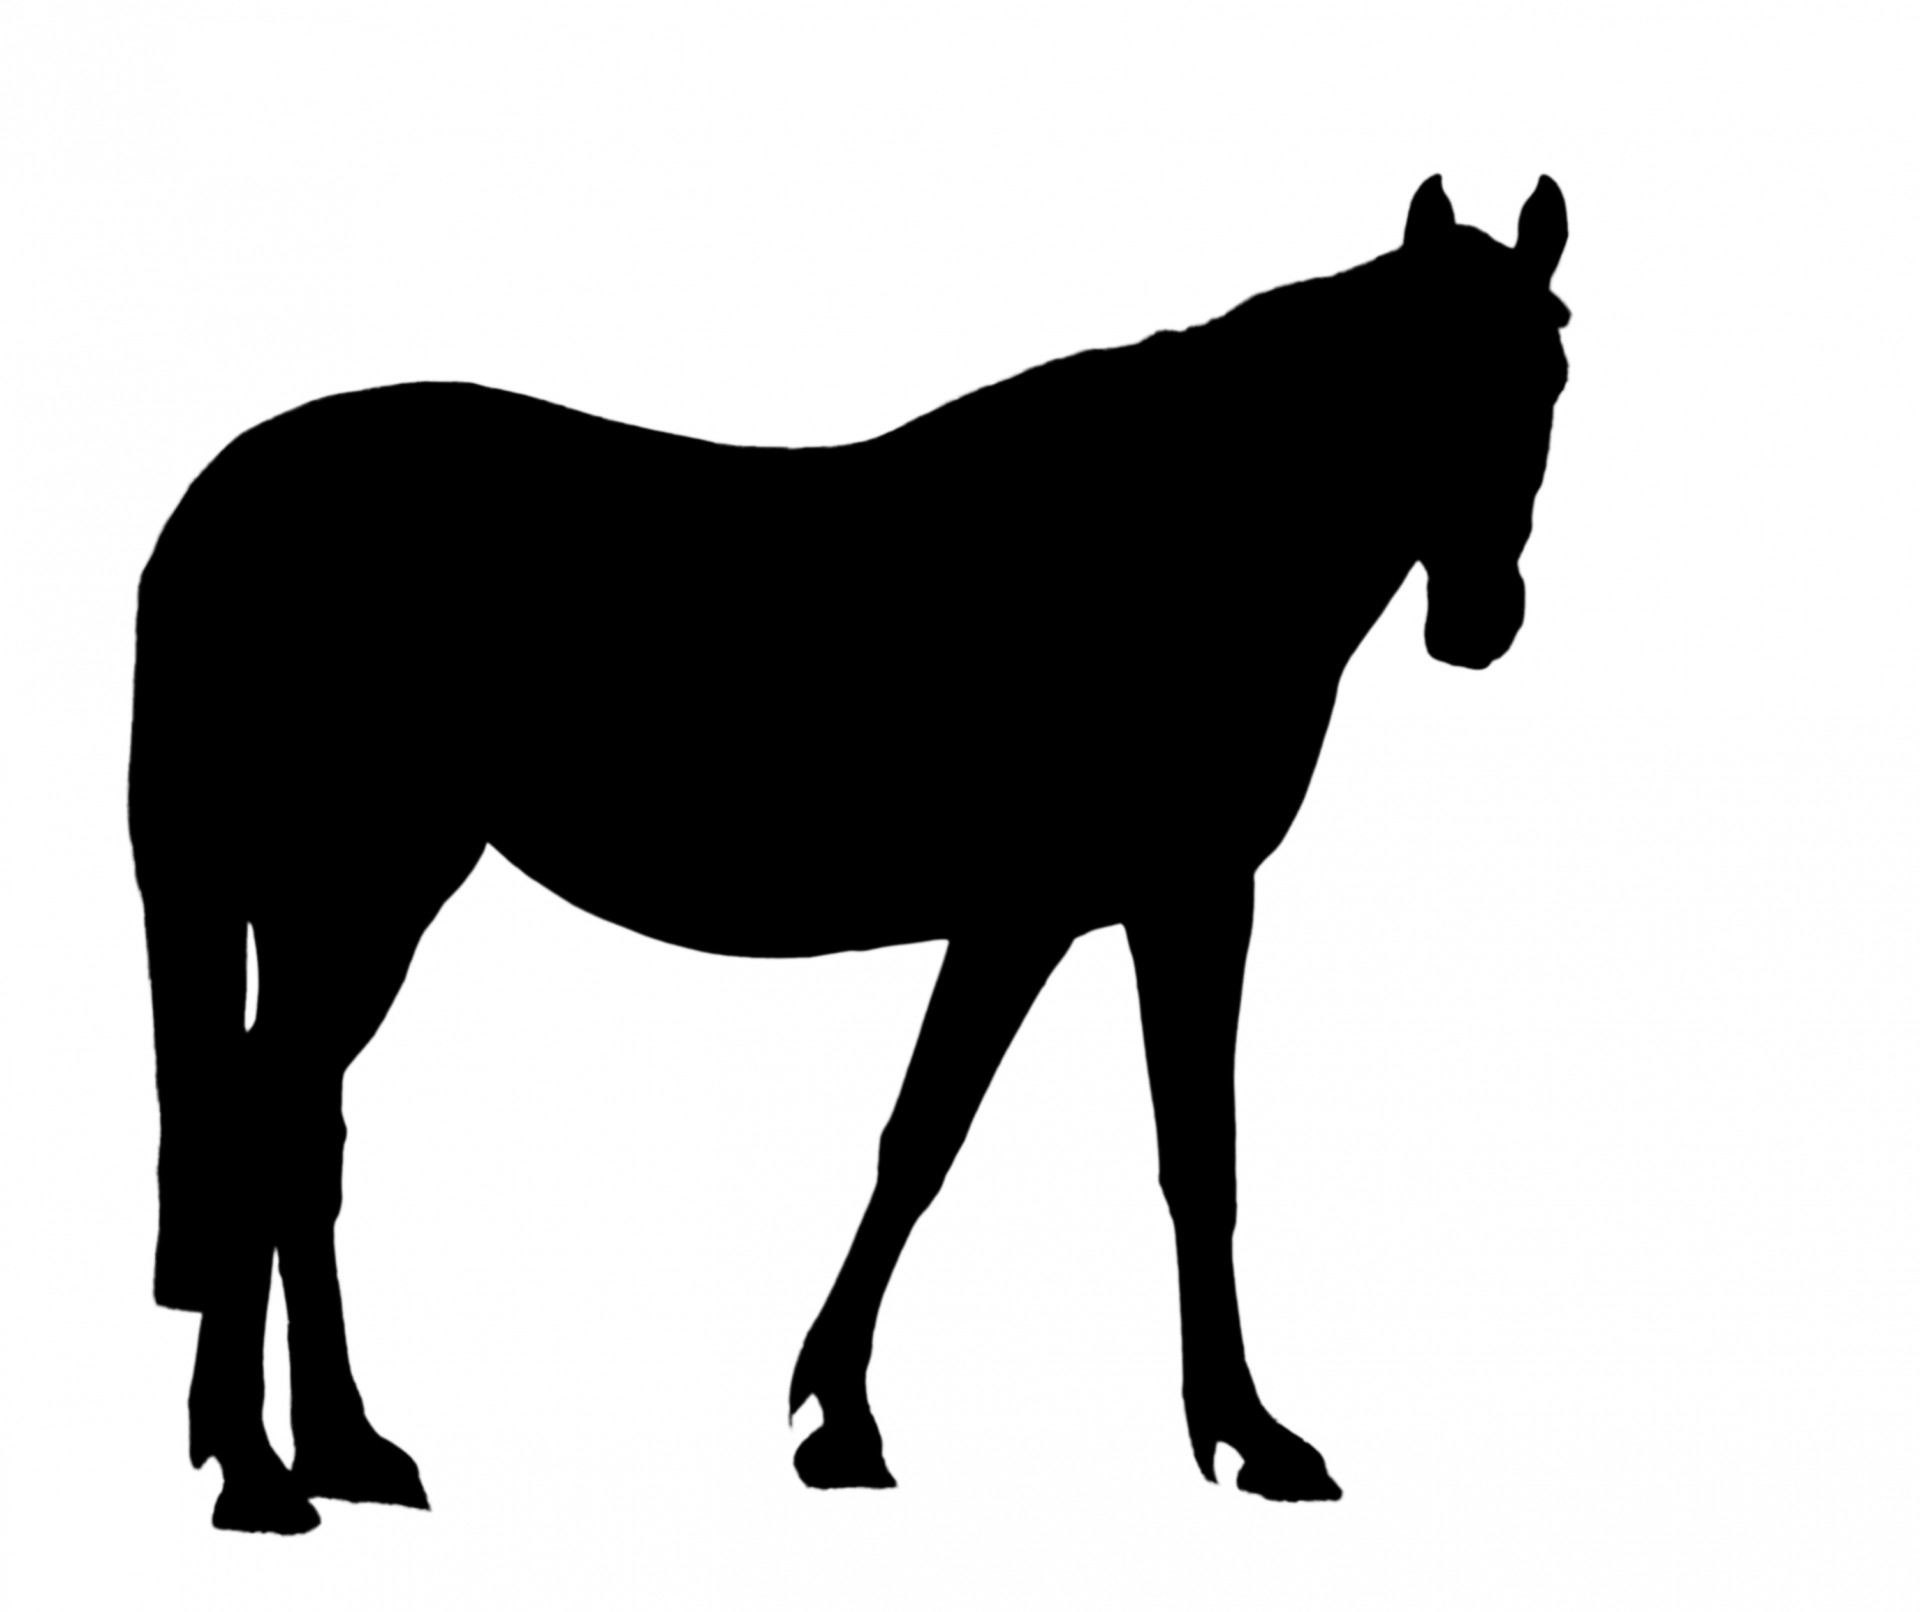 horse clipart silhouette at getdrawings com free for personal use rh getdrawings com horse clip art free downloads horse images free clipart